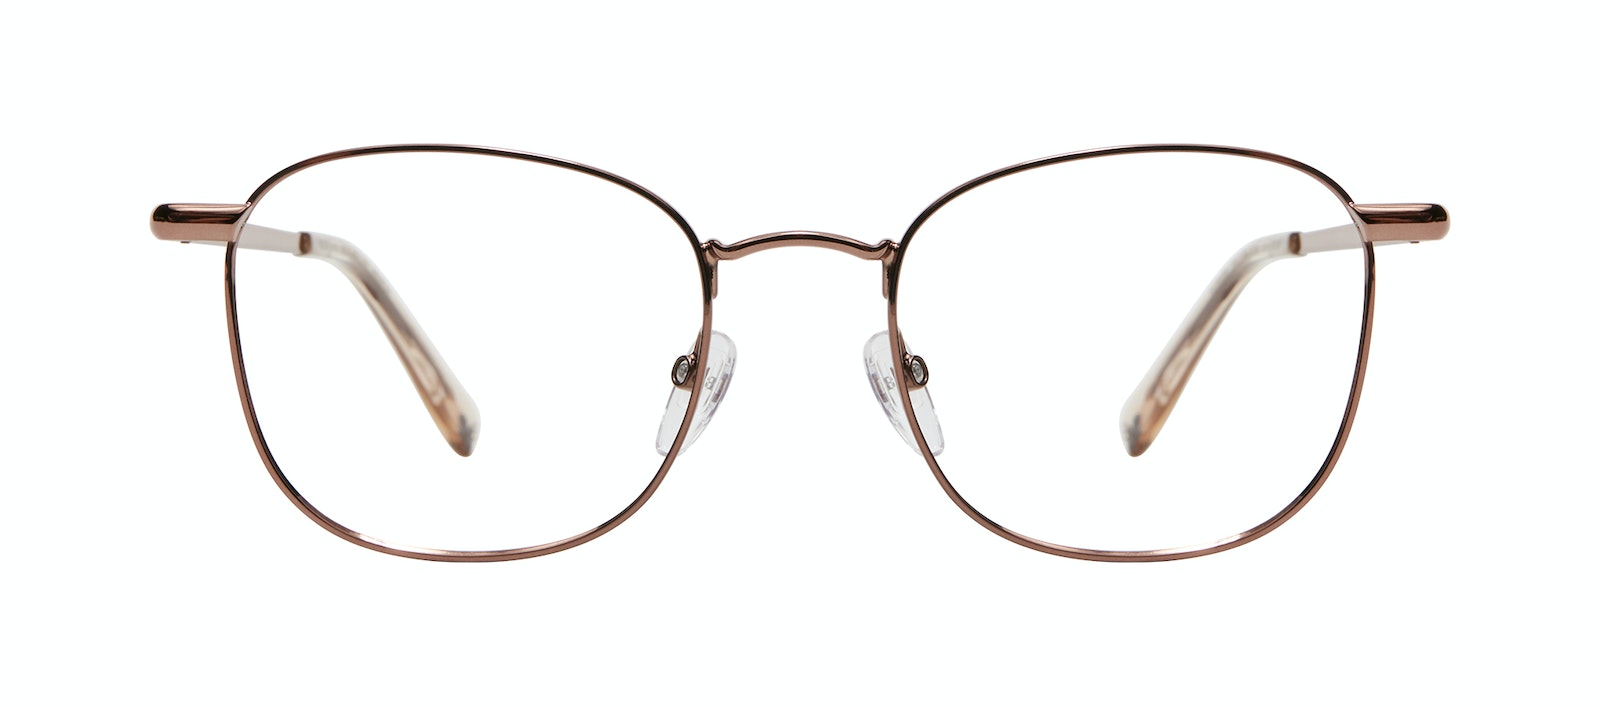 Affordable Fashion Glasses Square Eyeglasses Men Women Apex M Copper Front